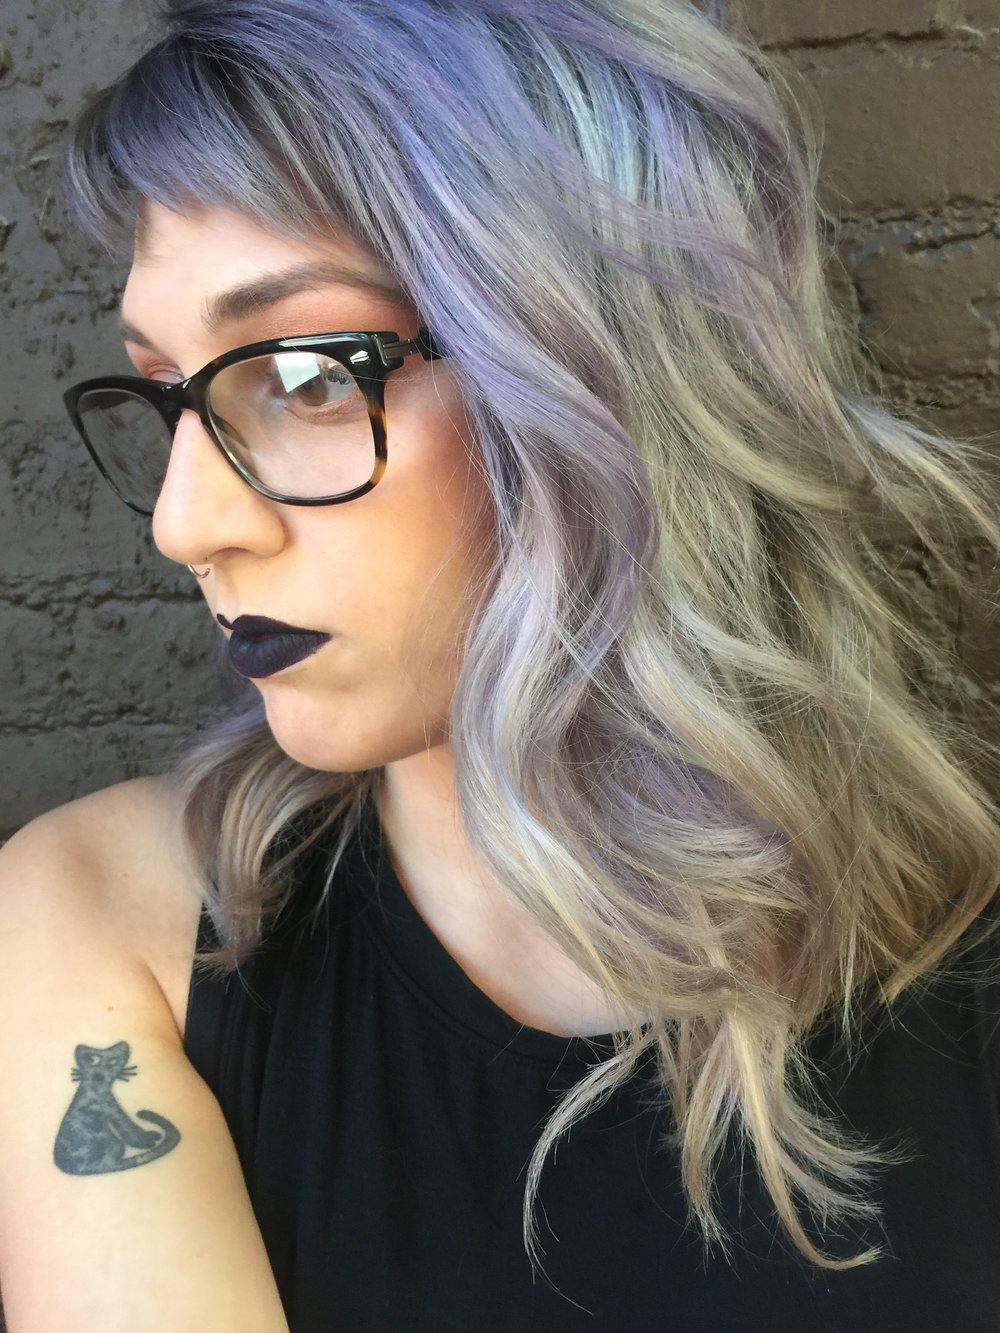 Elyse Venezia, Stylist Embrace the true you! That's my motto. Whether it's fantasy mermaid hair, a funky short pixie, or natural luscious locks. Don't let others, or your age, dictate your look. Do what makes you truly happy and confident.